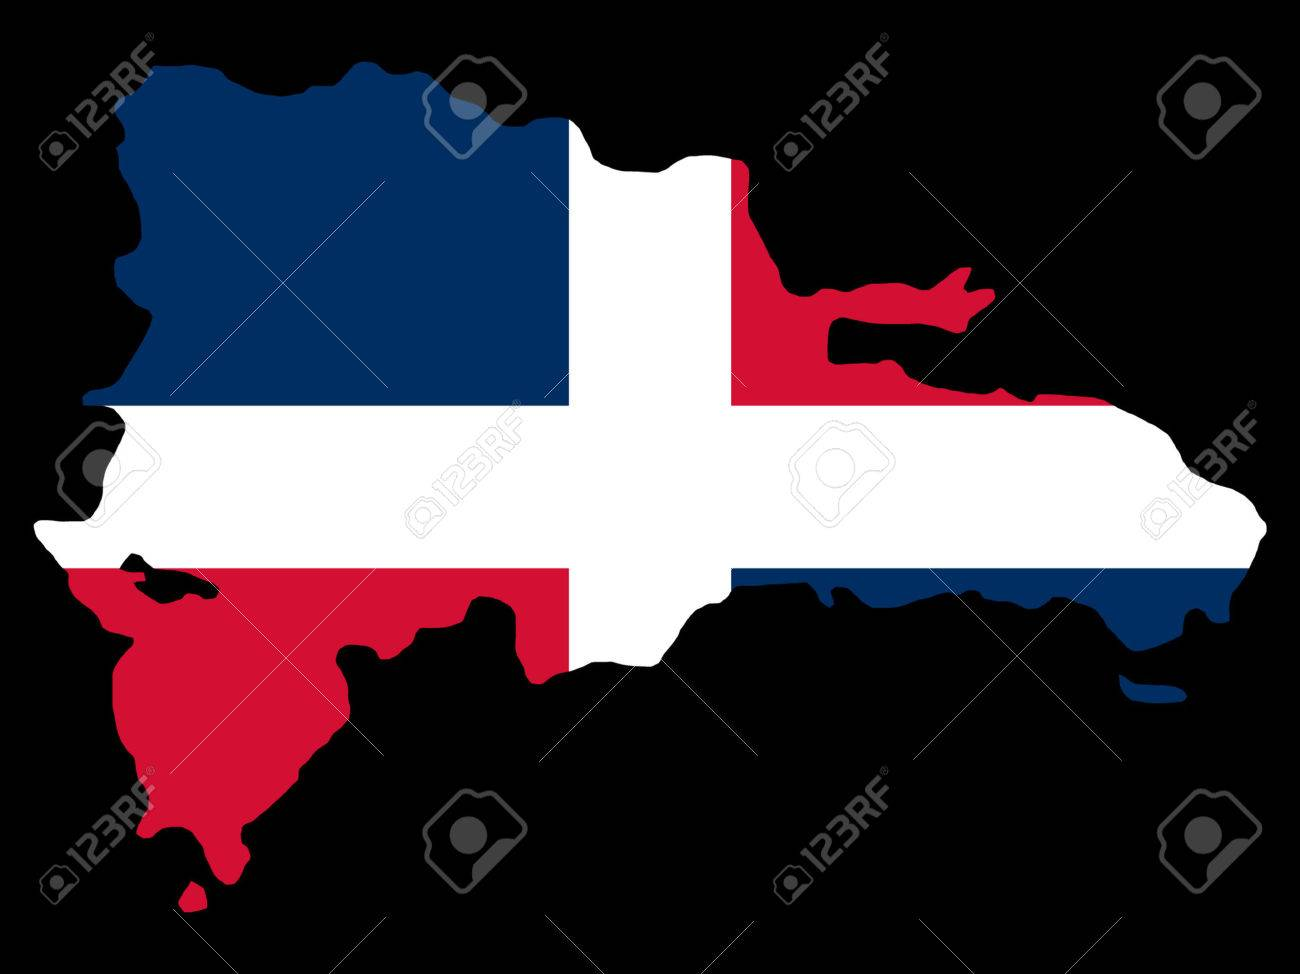 map of Dominican republic and Dominican flag illustration Stock Vector - 866658